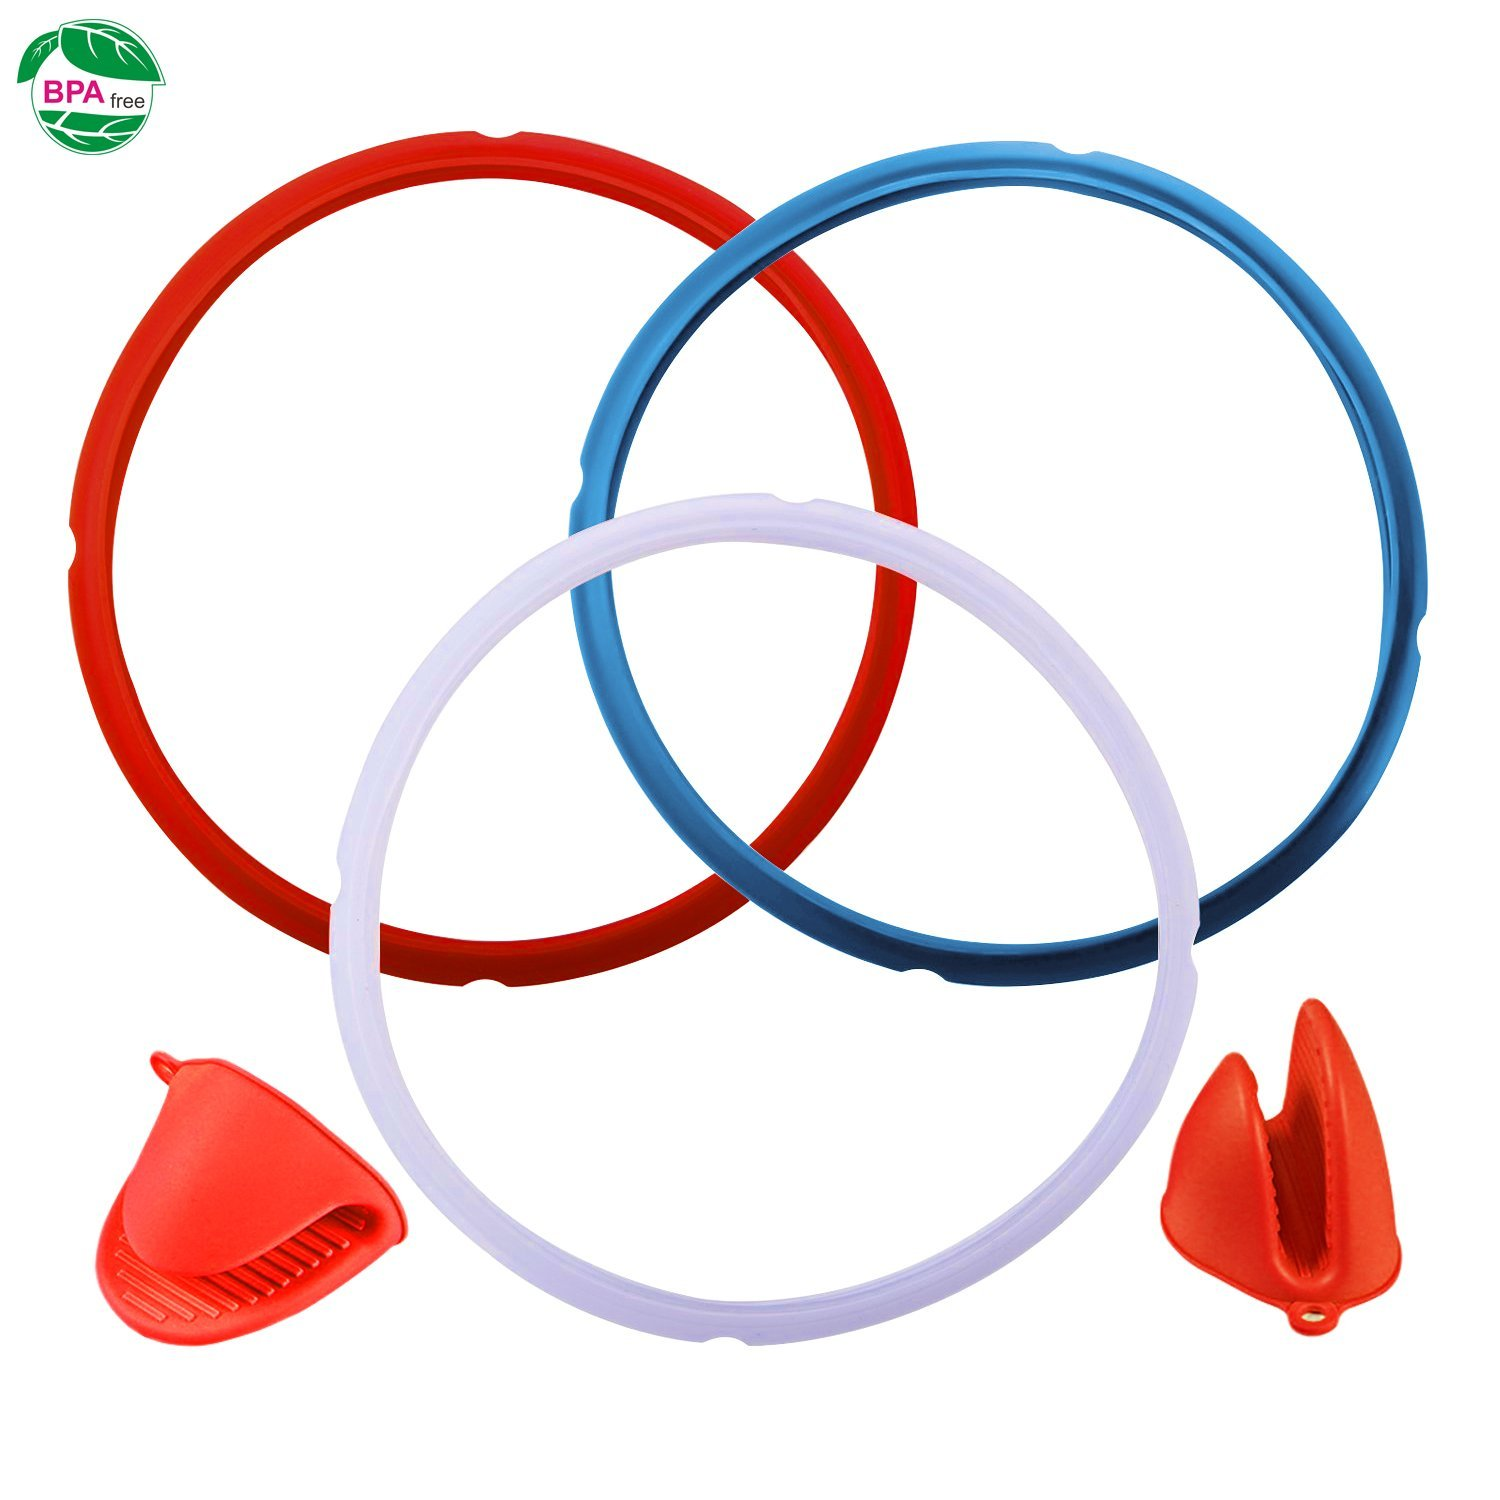 Silicone Sealing Ring for Instant Pot Accessories, Fits 5 or 6 qt Instant Pot Models Seal Lasting & BPA-free Pack of 3 with 1 pair of Silicone Oven Mitts Free (Blue,Red,Clear)